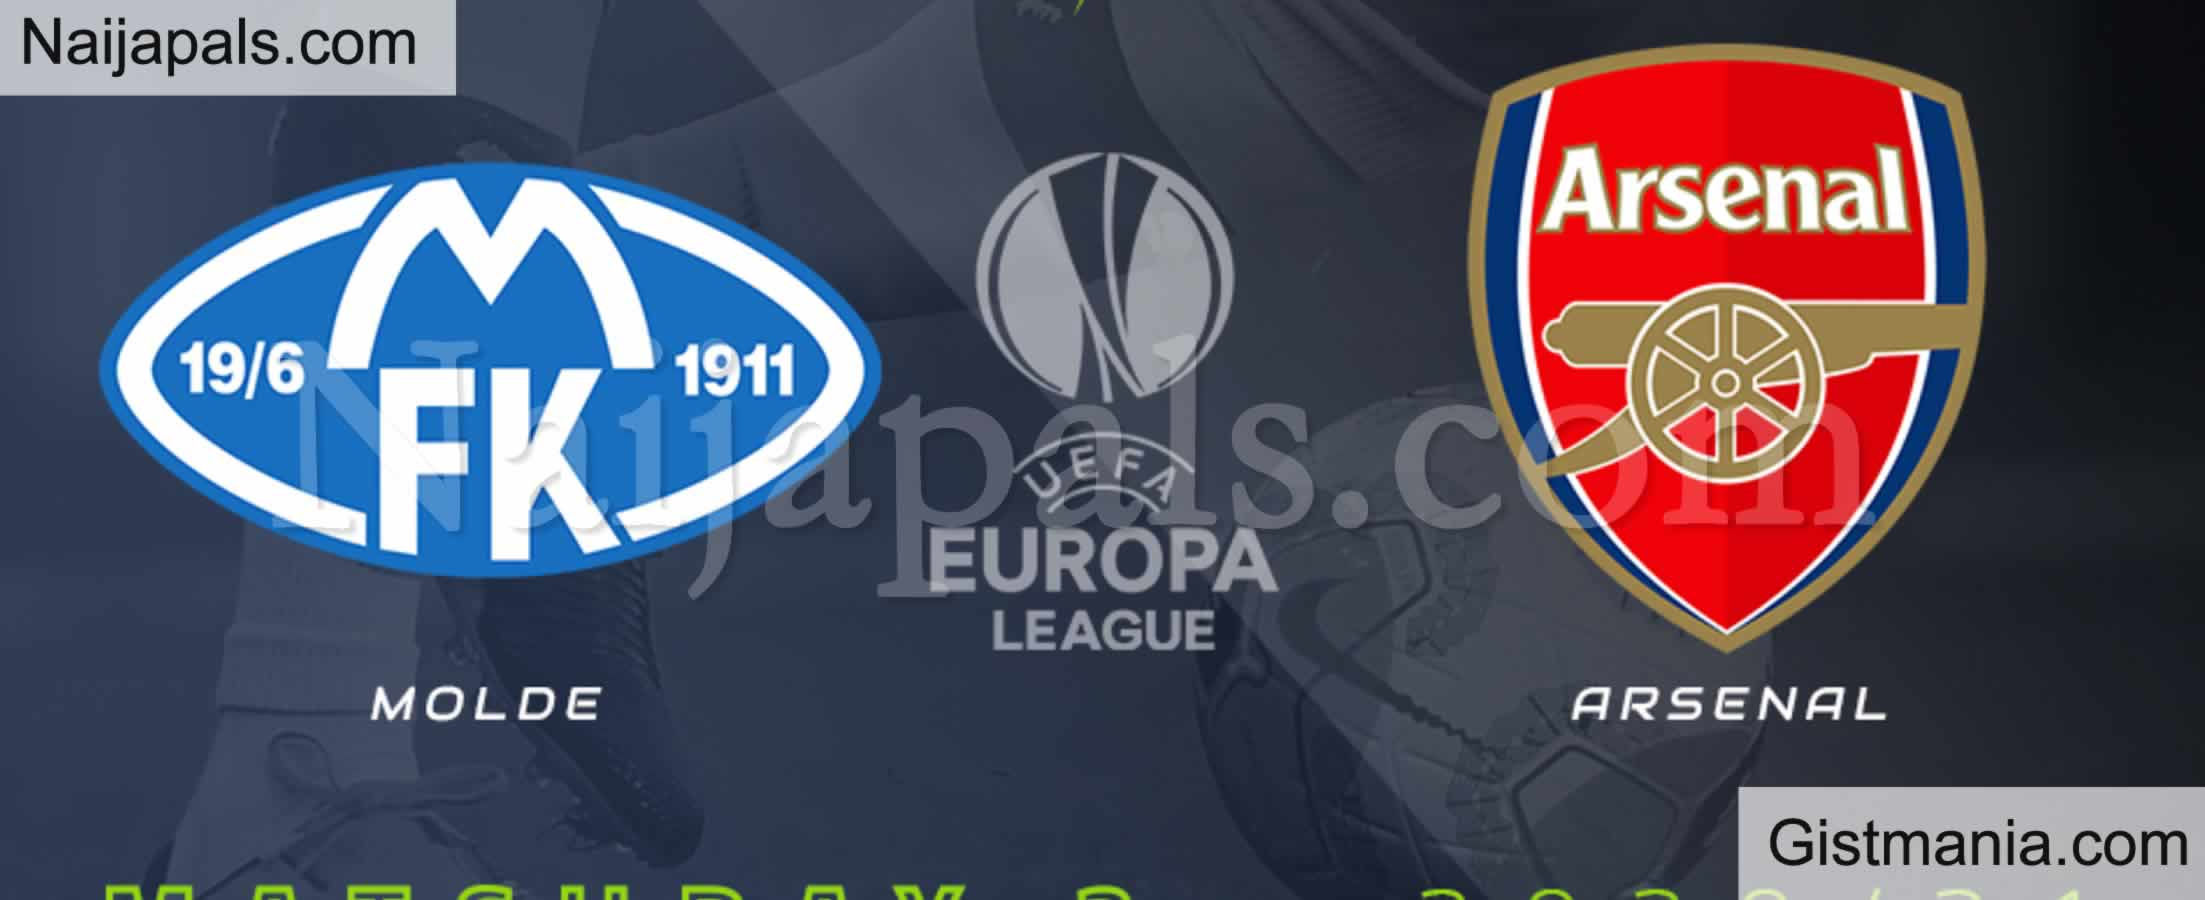 <img alt='.' class='lazyload' data-src='https://img.gistmania.com/emot/soccer.gif' /> <b>Molde v Arsenal : UEFA Europa League Match, Team News, Goal Scorers and Stats</b>